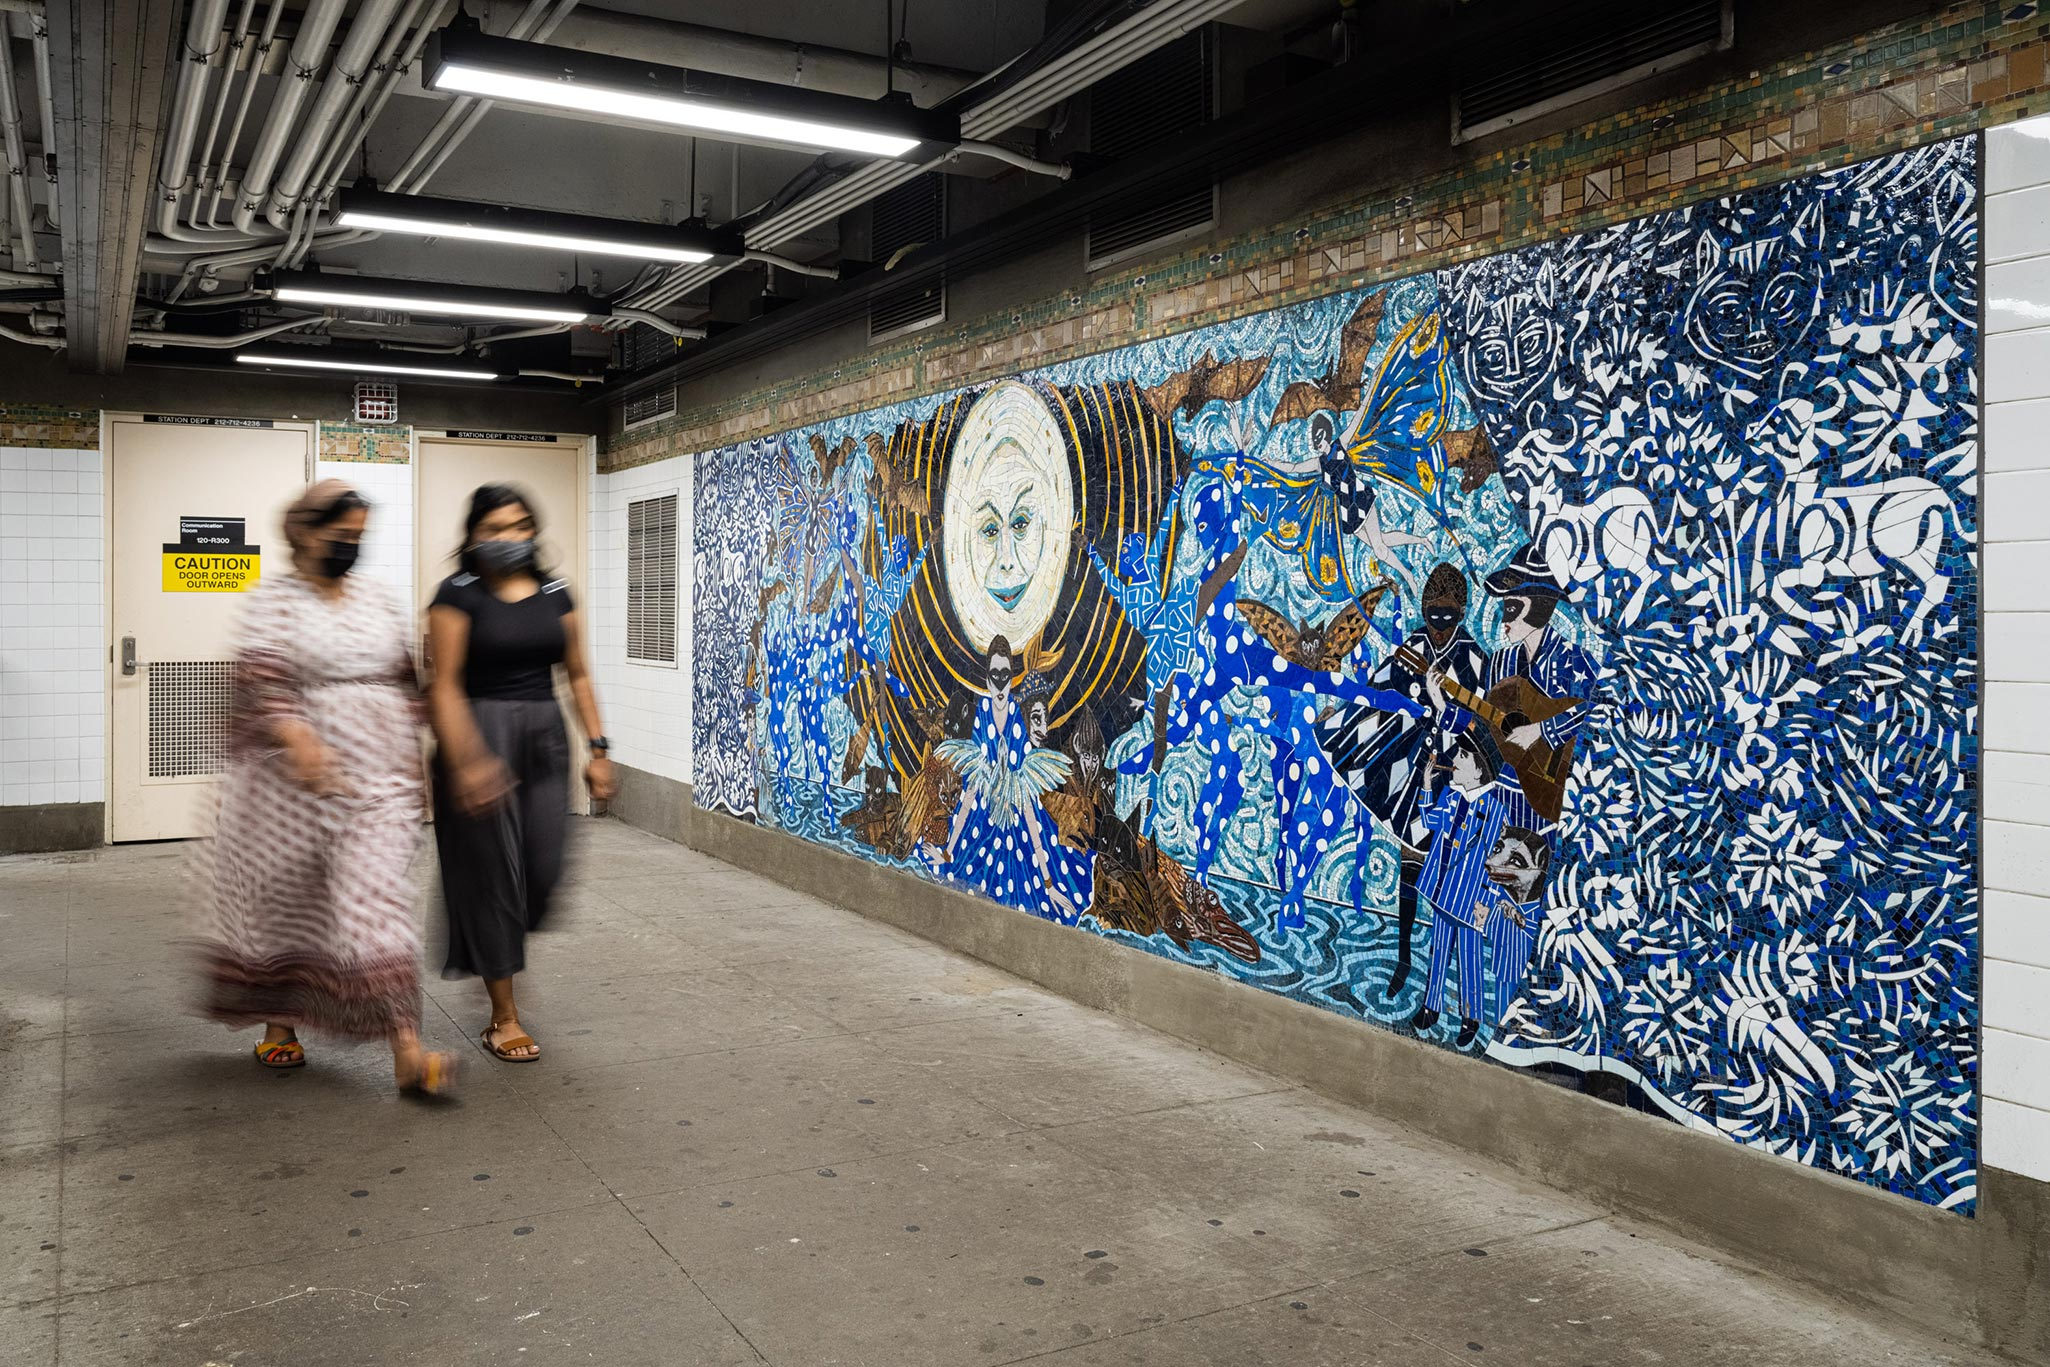 A photo of a mosaic mural by Marcel Dzama, titled No Less Than Everything Comes Together, installed in the subway in New York, in 2021.